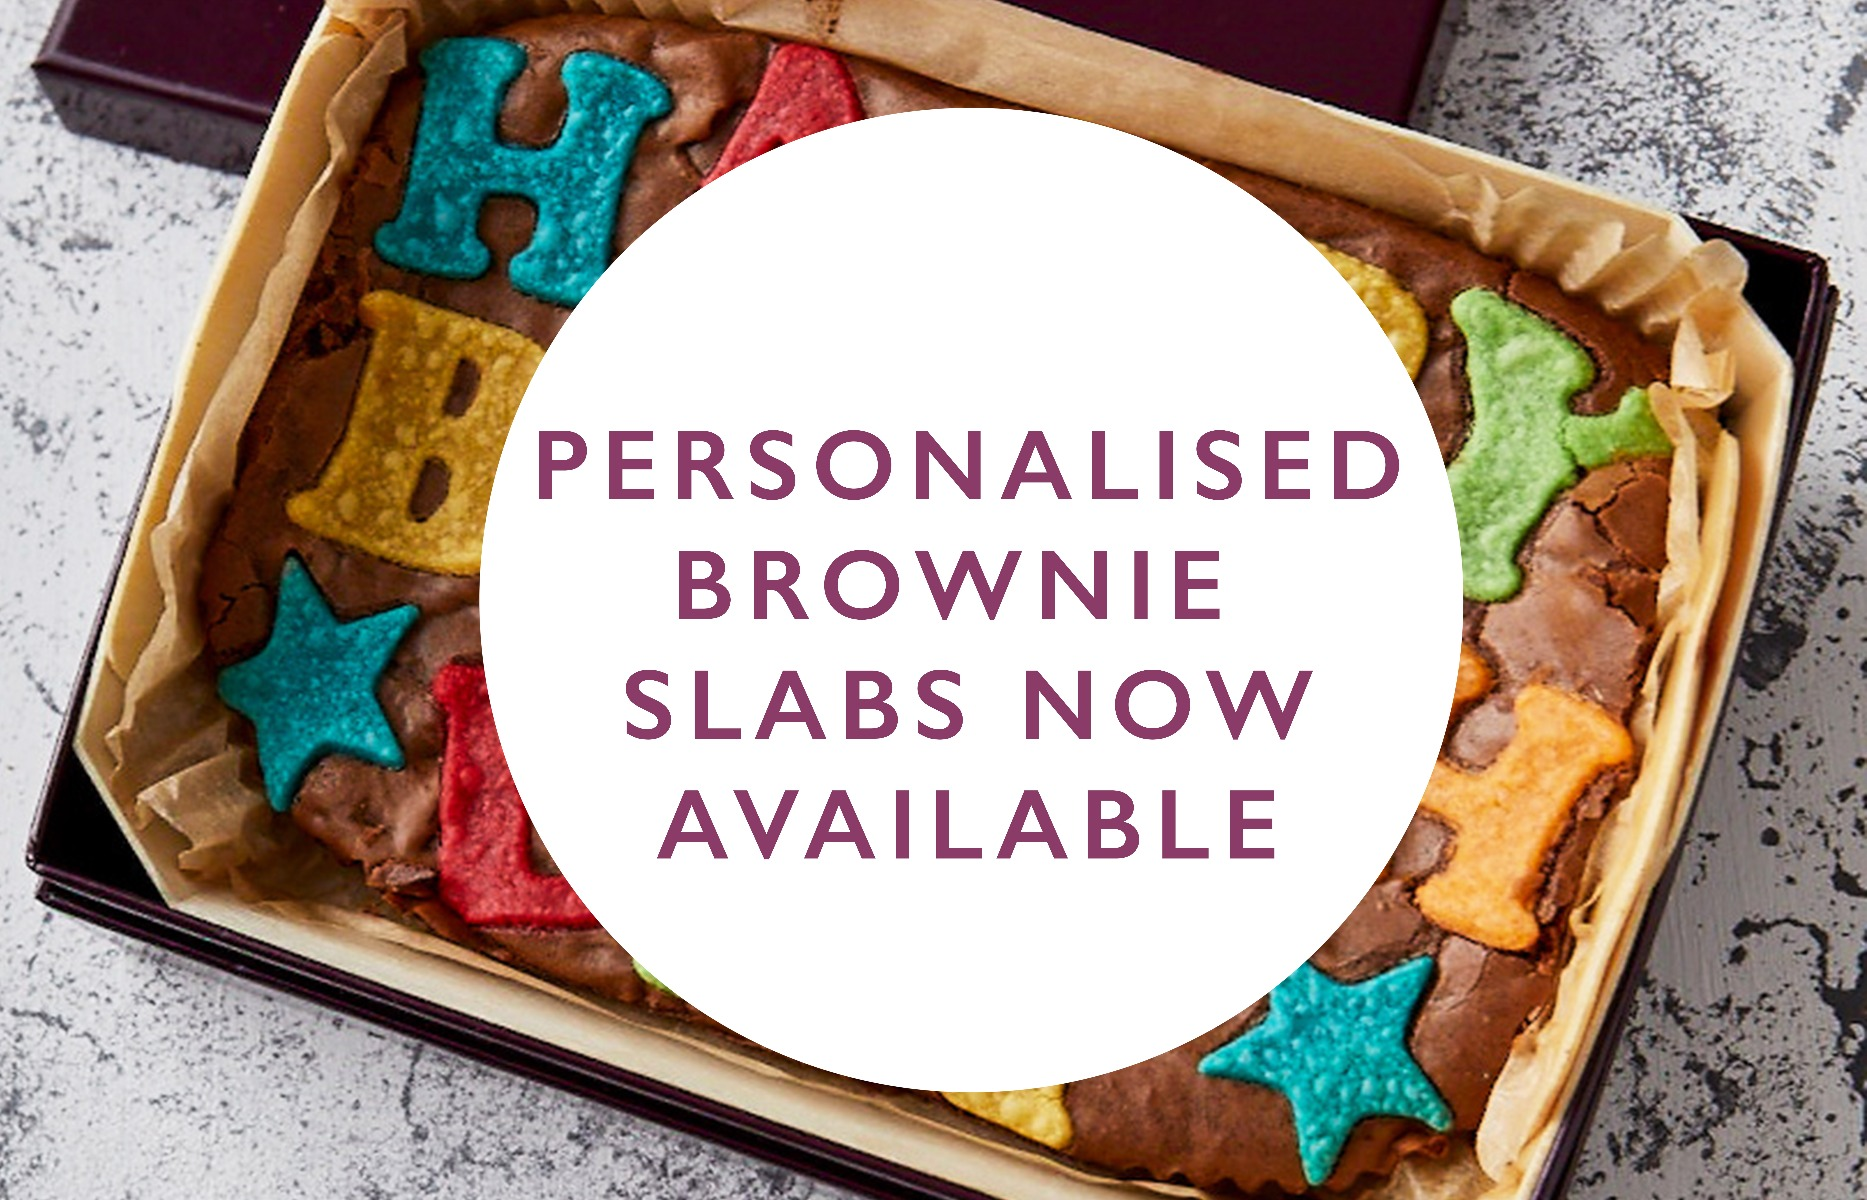 Personalised Brownie Slabs